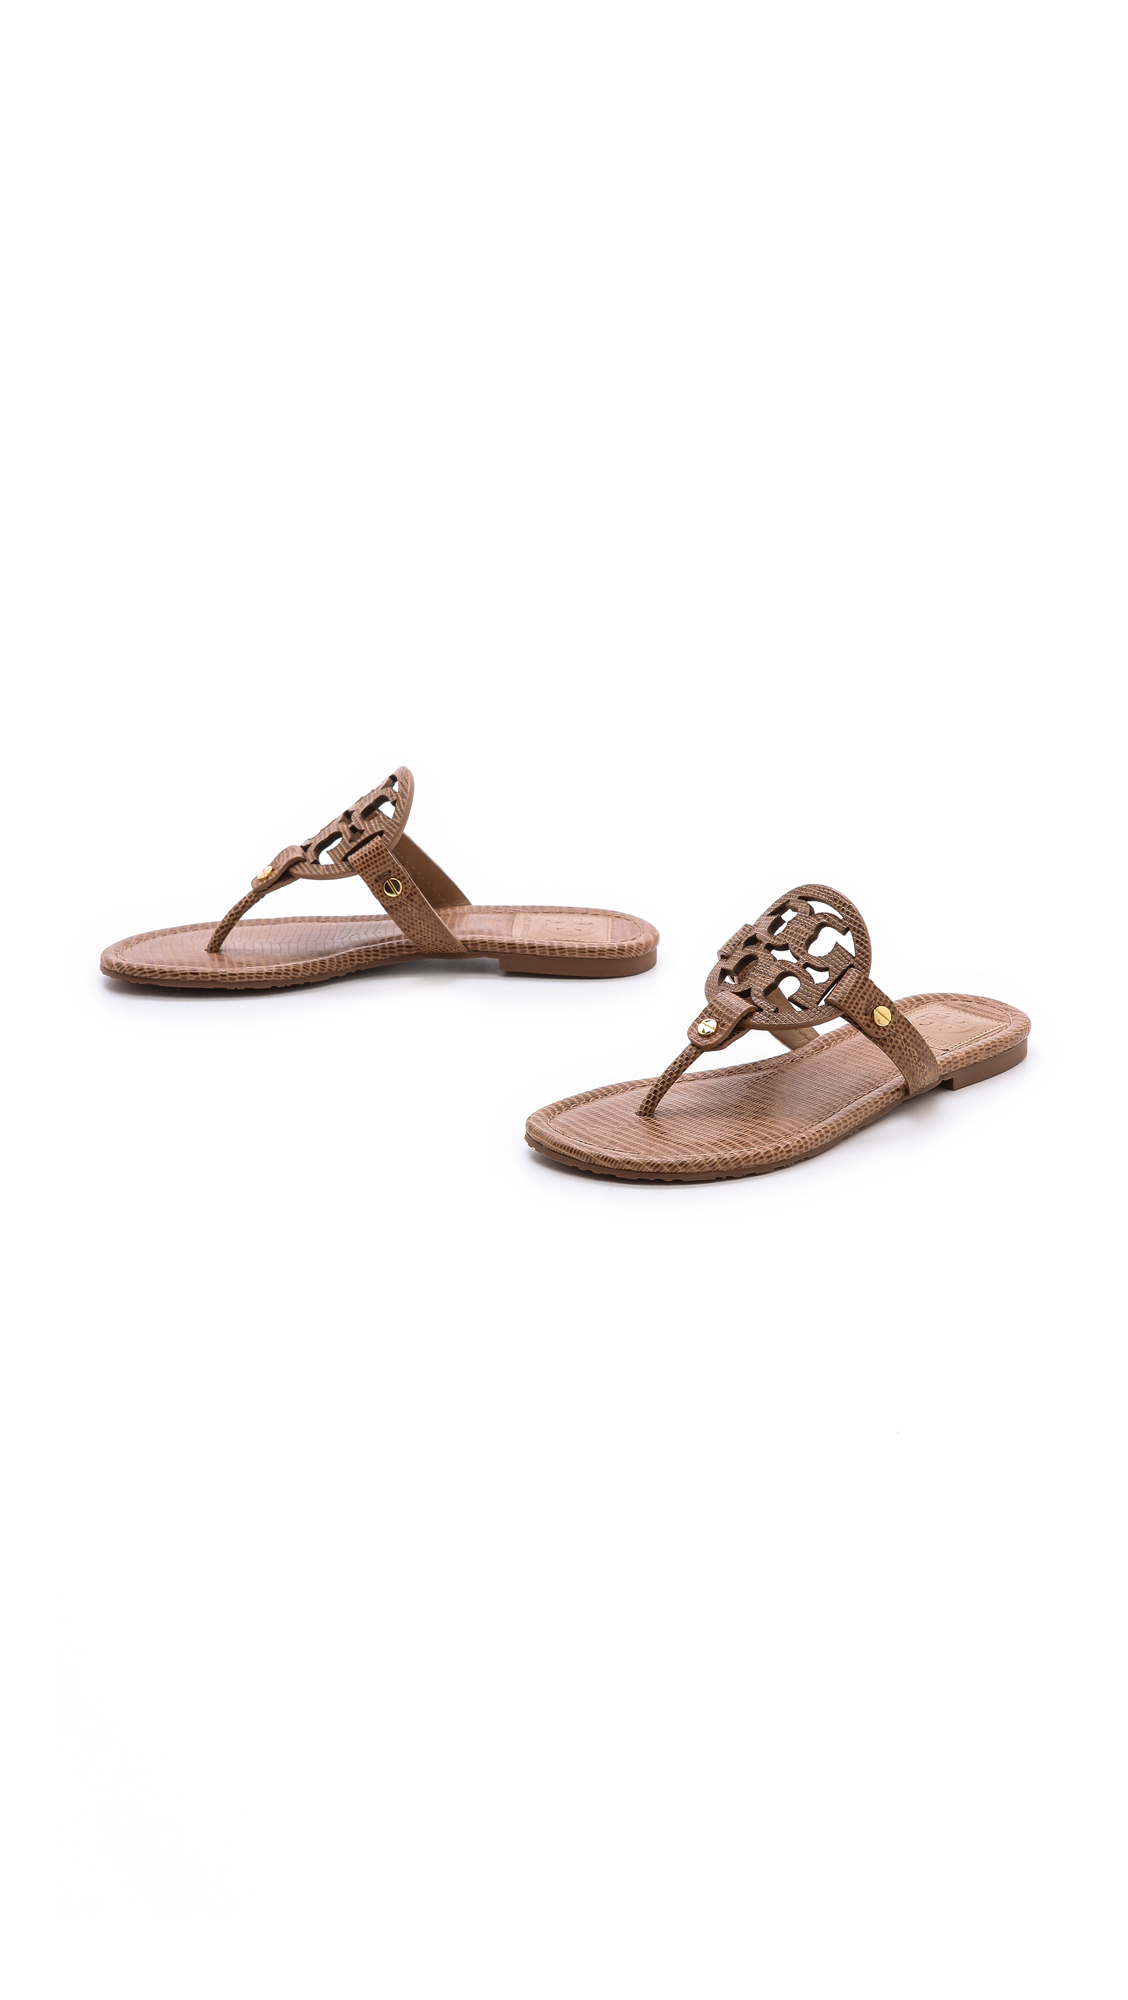 5bb2ac87a91f Tory Burch Miller Tejus Print Sandals Newport Navy in Brown - Lyst